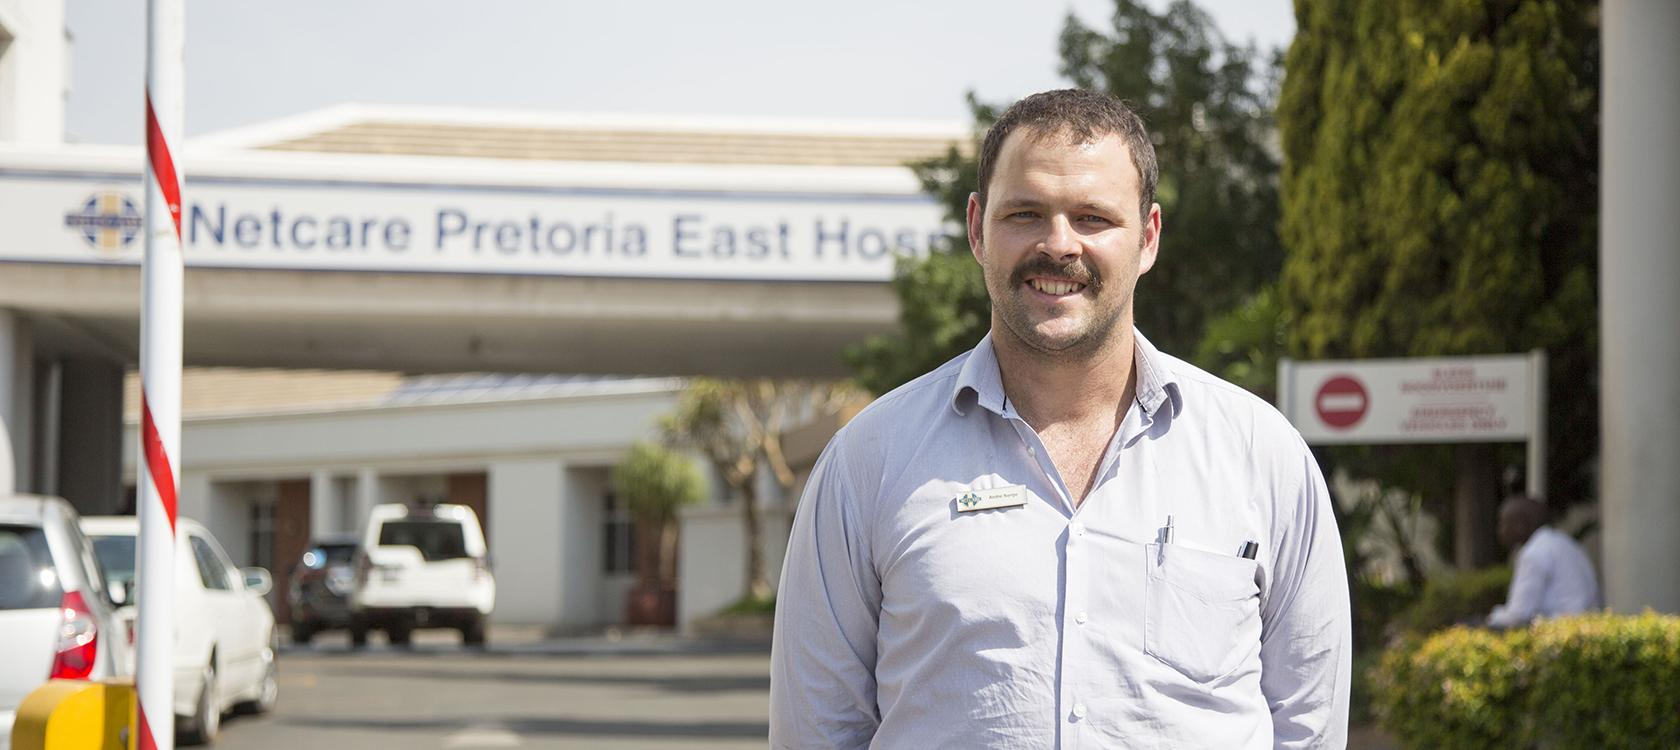 South Africa, Netcare, Frisone